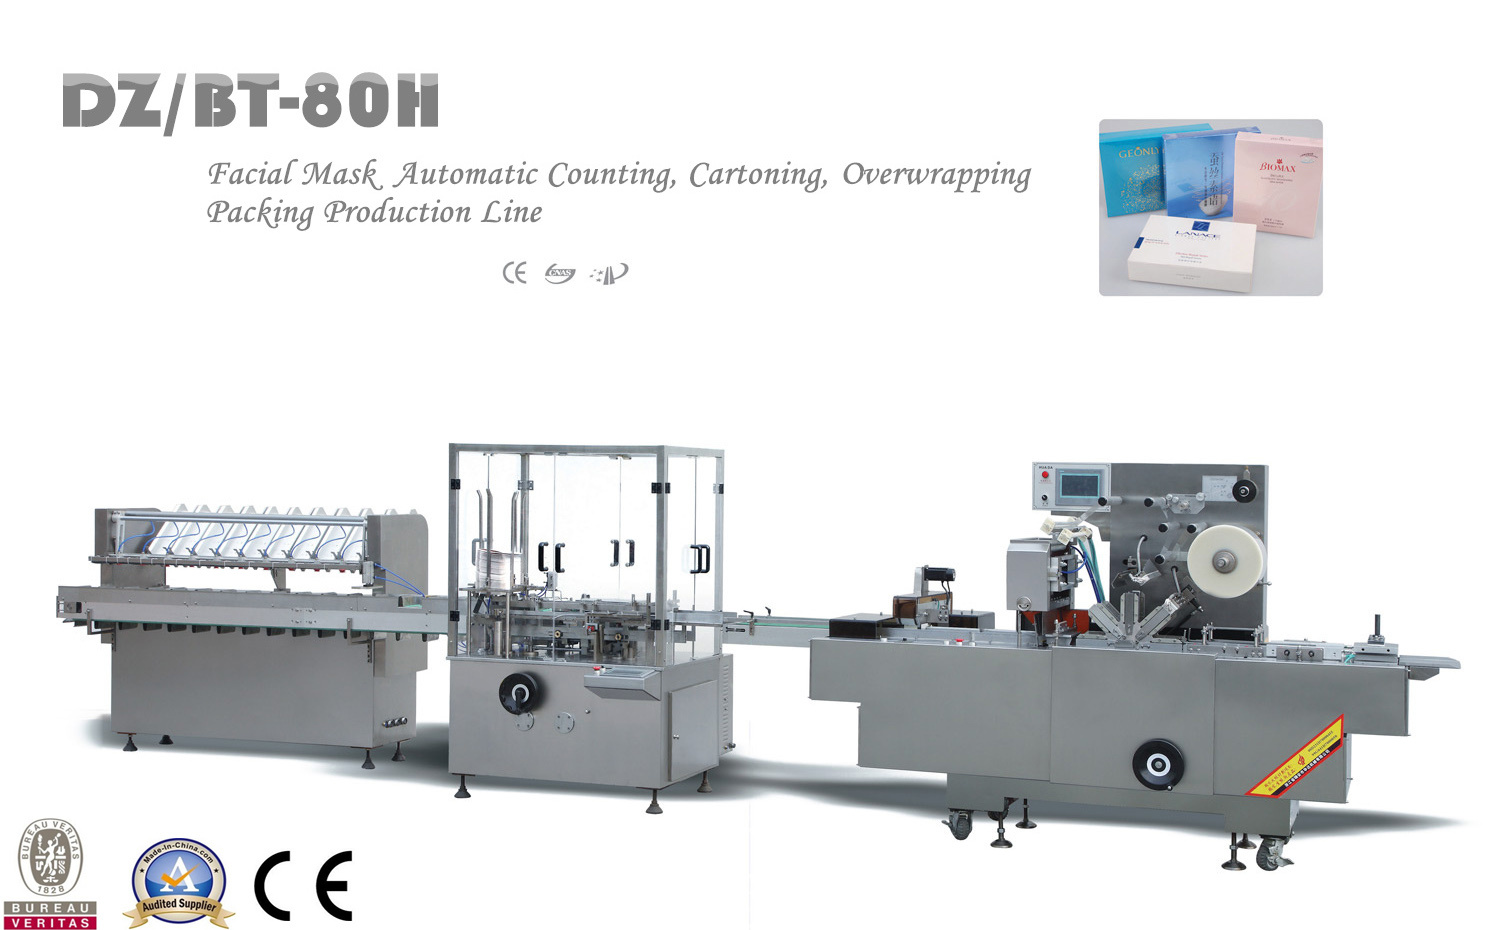 Dz/Bt-80h High Speed Automatic Cartoning Machine